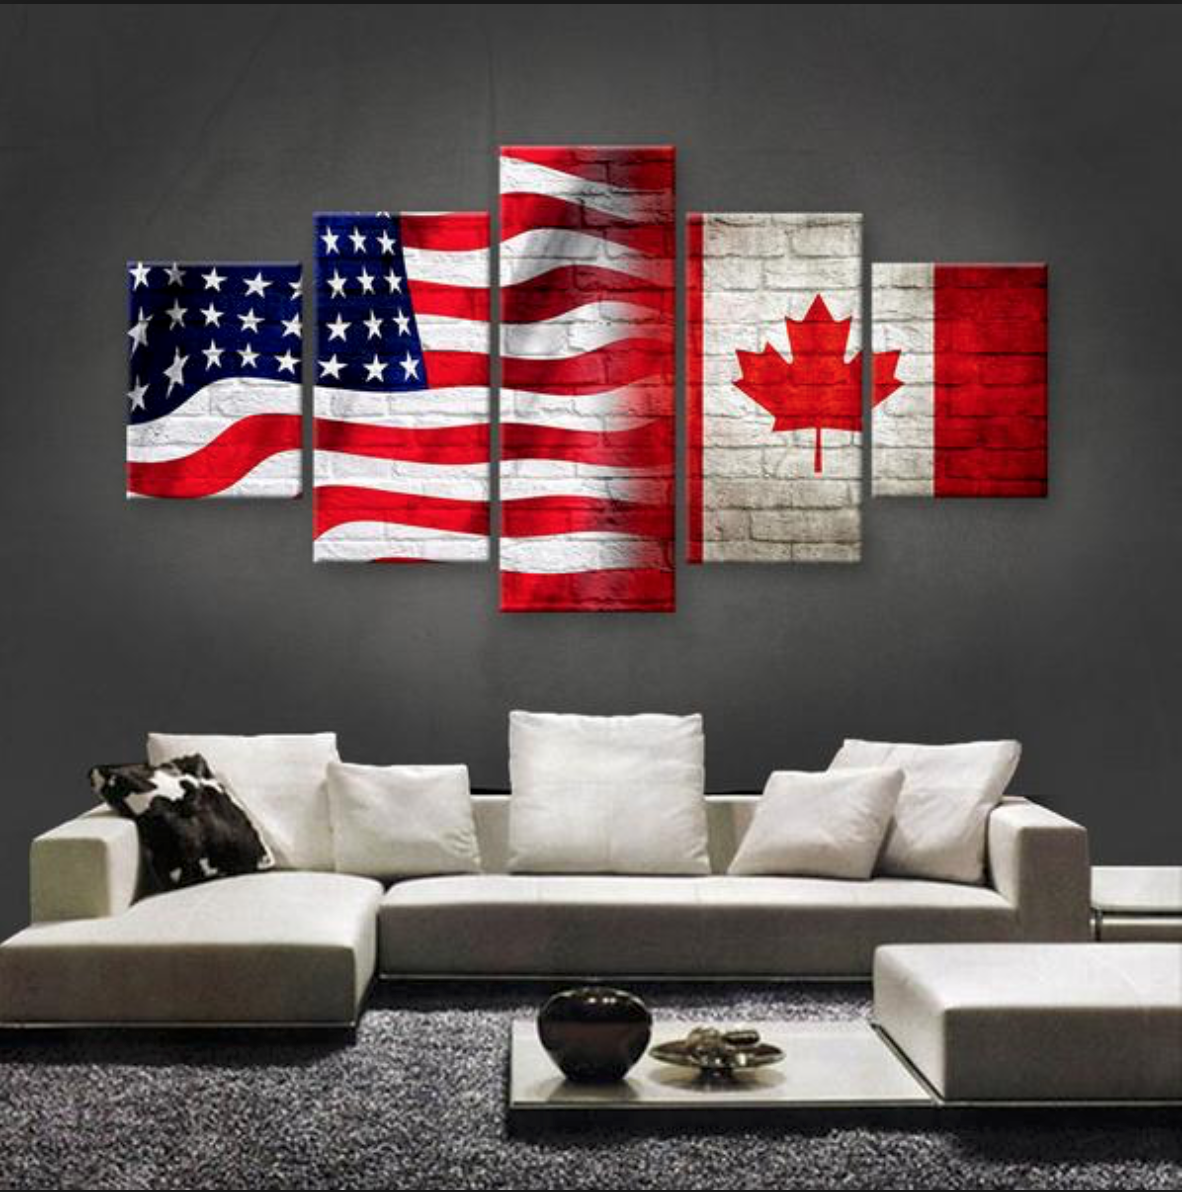 Flag wall art 5 panel American large wall canvas Mexican